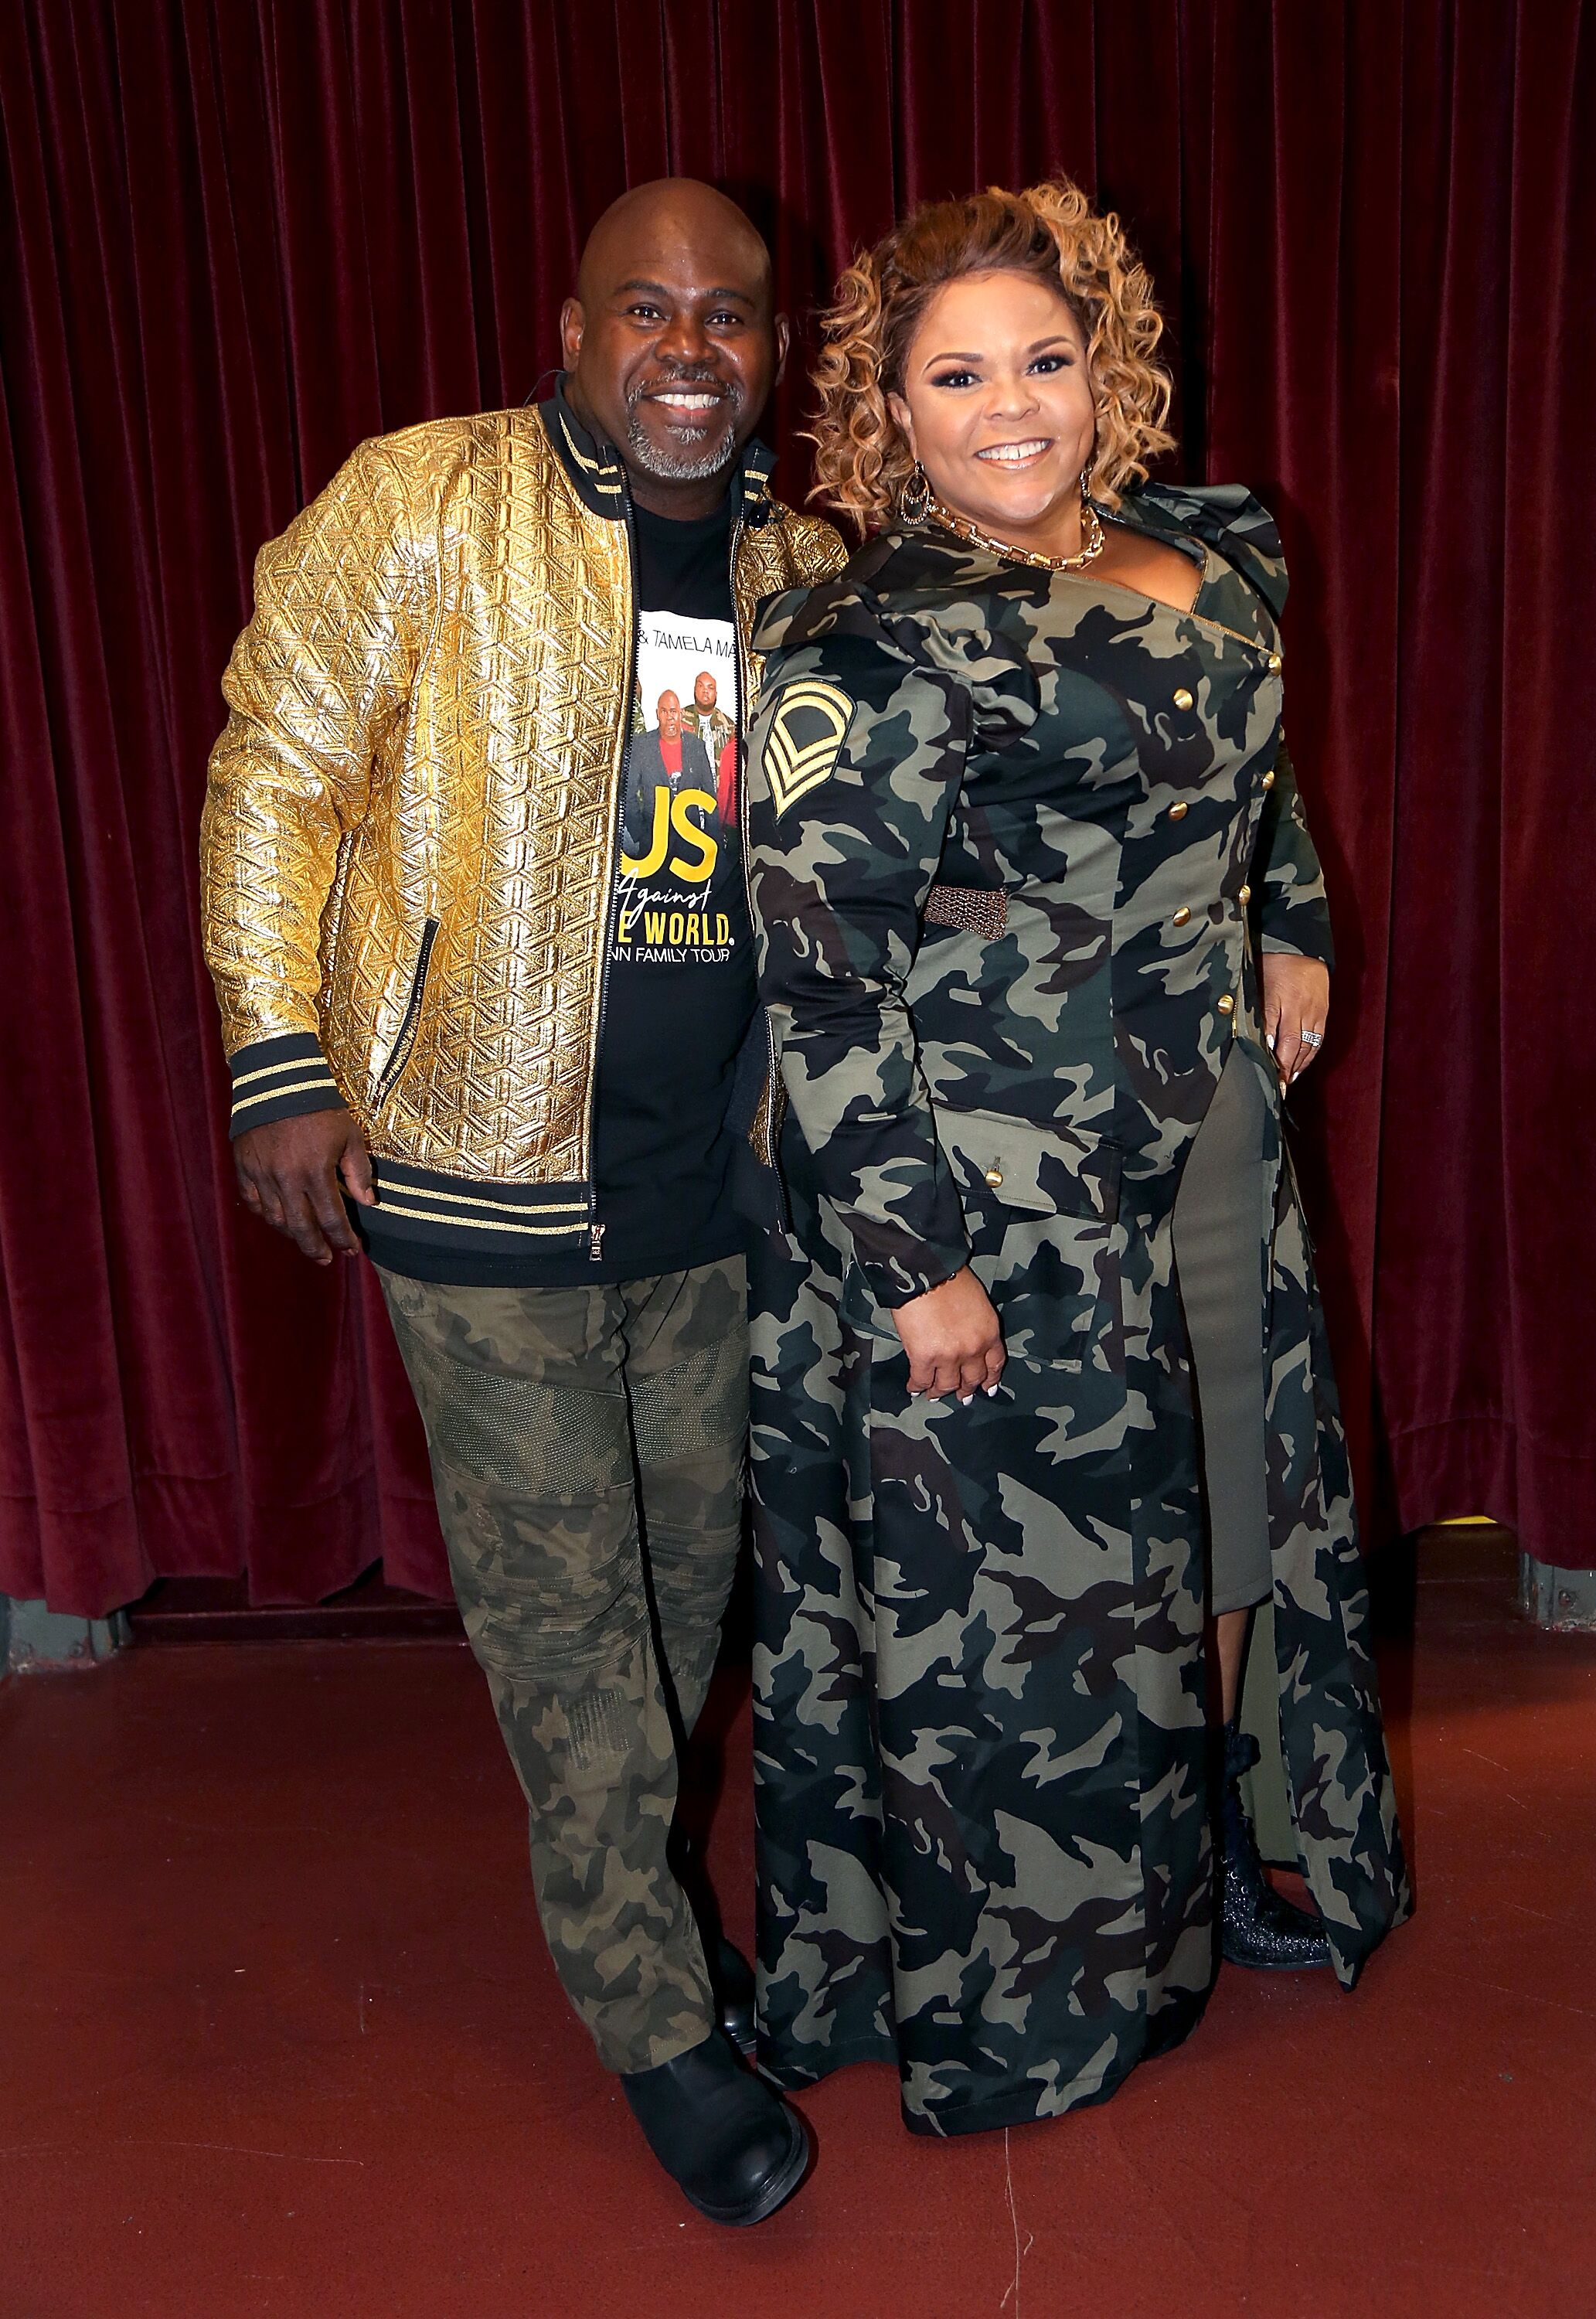 Tamela and David Mann backstage at one of their concerts | Source: Getty Images/GlobalImagesUkraine